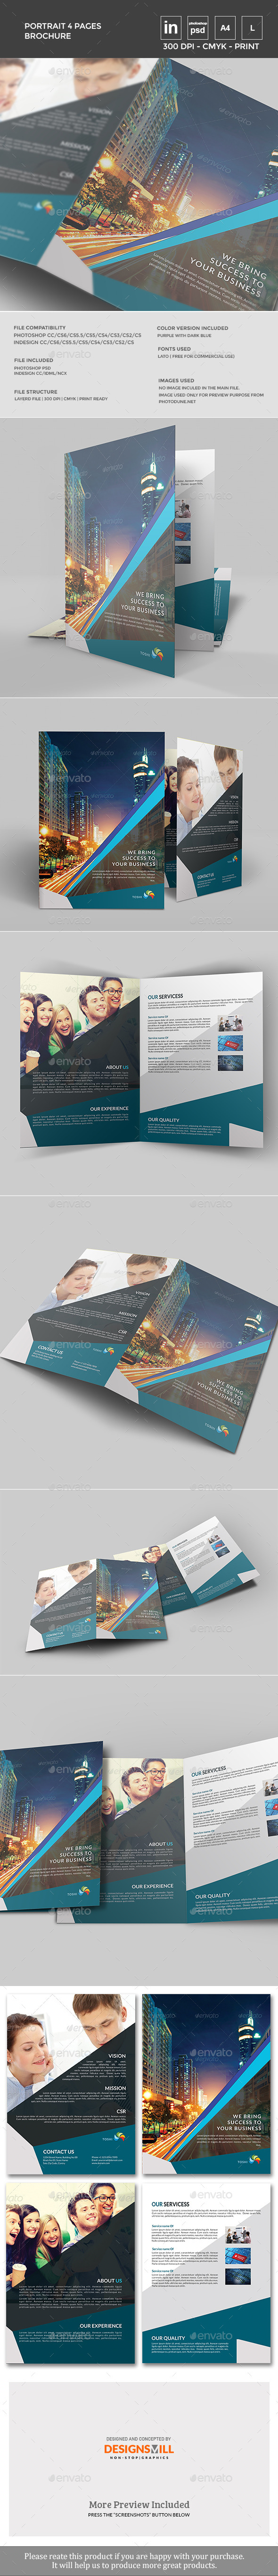 GraphicRiver Brochure 11526656